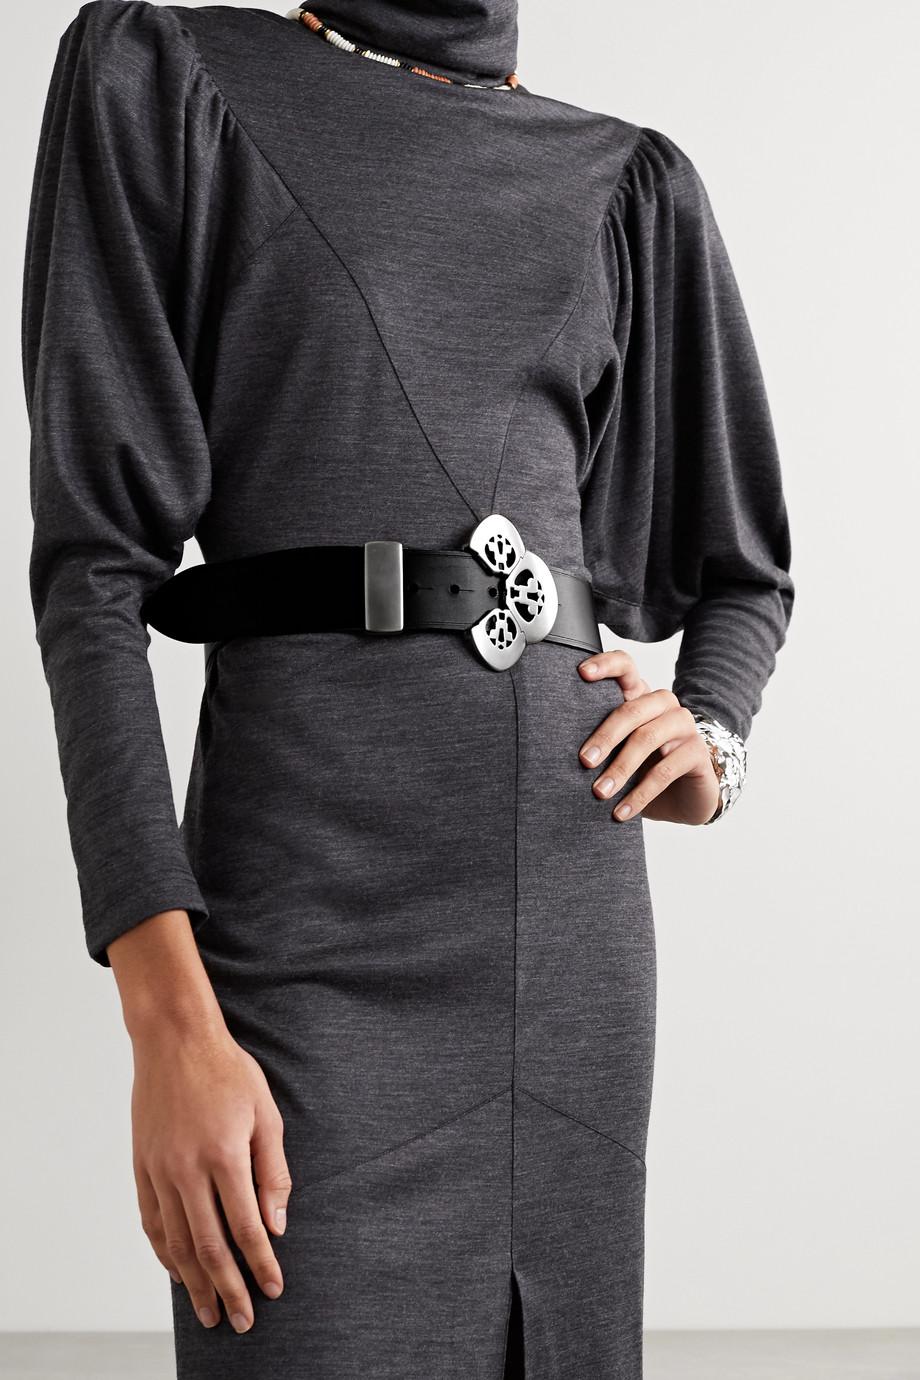 Isabel Marant Adaria leather belt